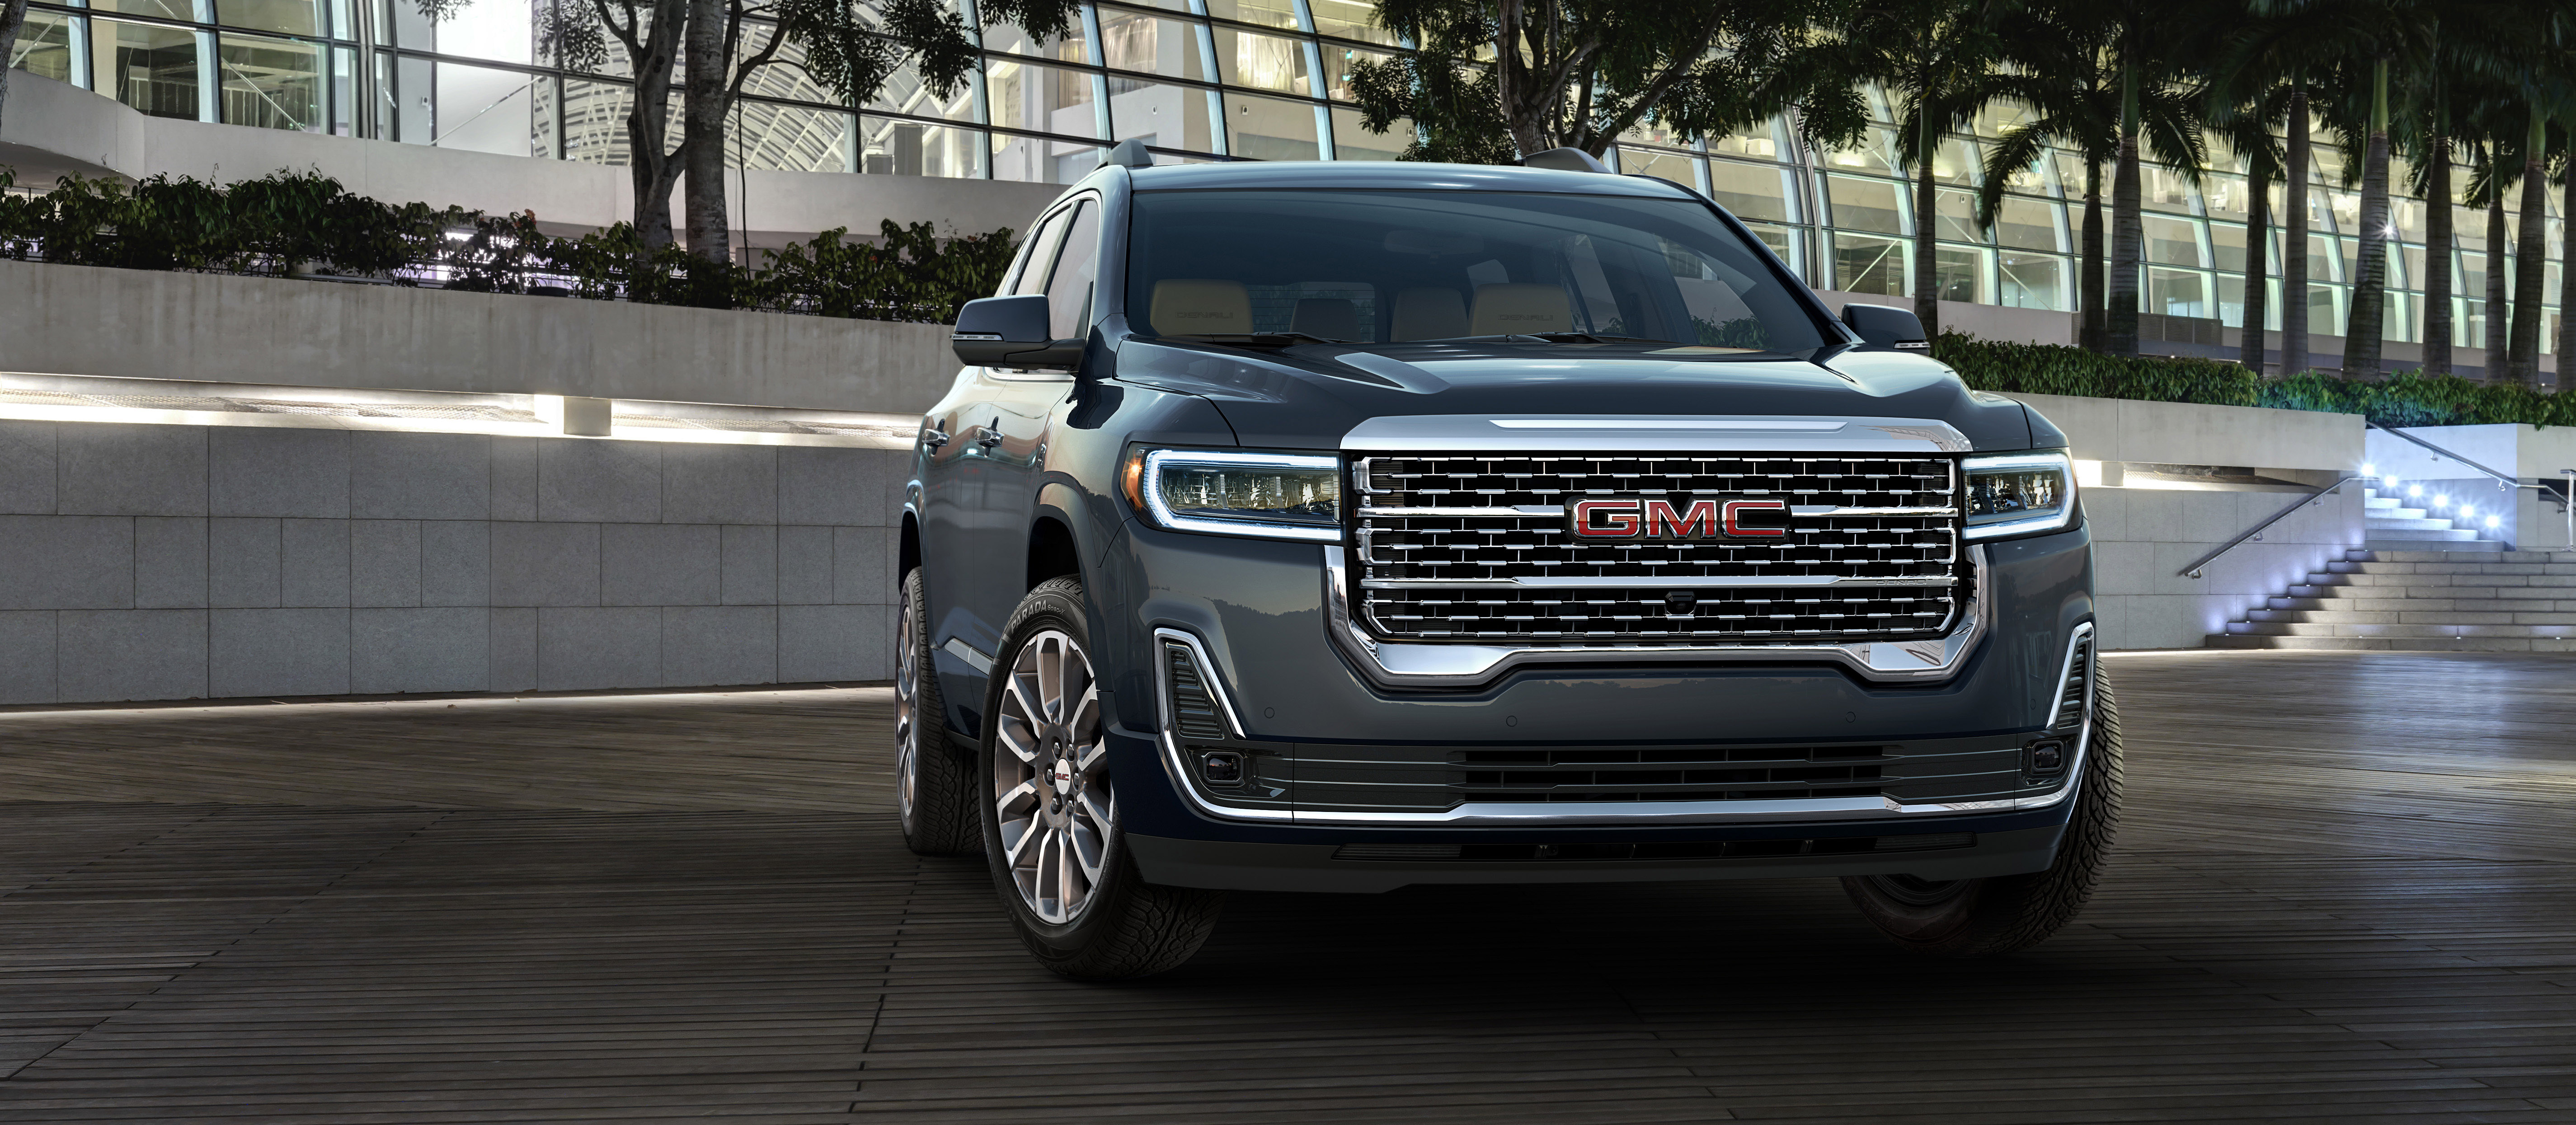 99 Best 2020 GMC Acadia Review